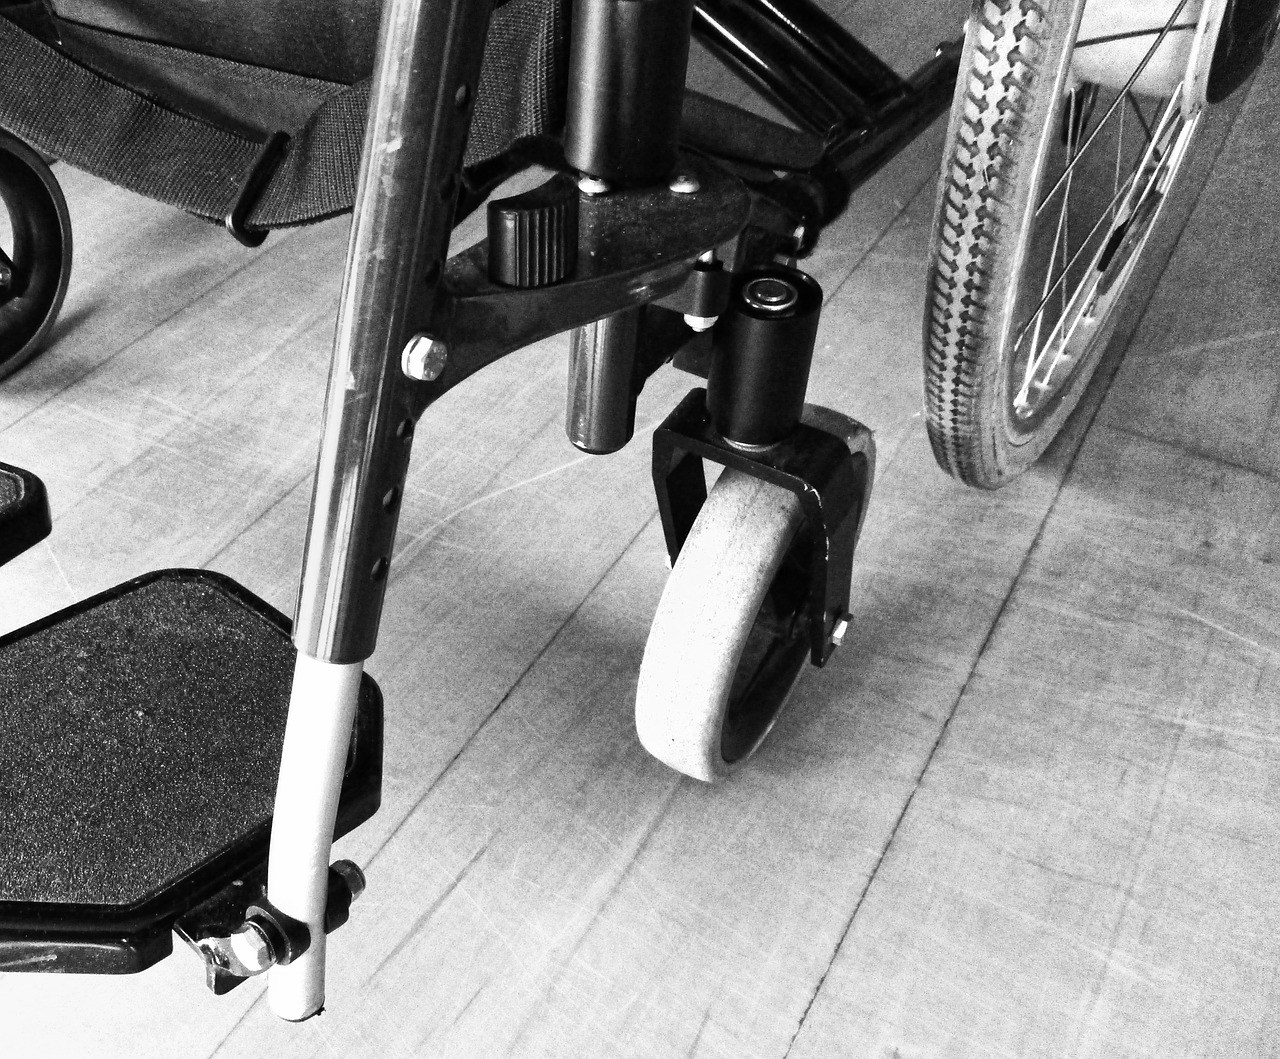 Long-Term Disability for Small Business Owners